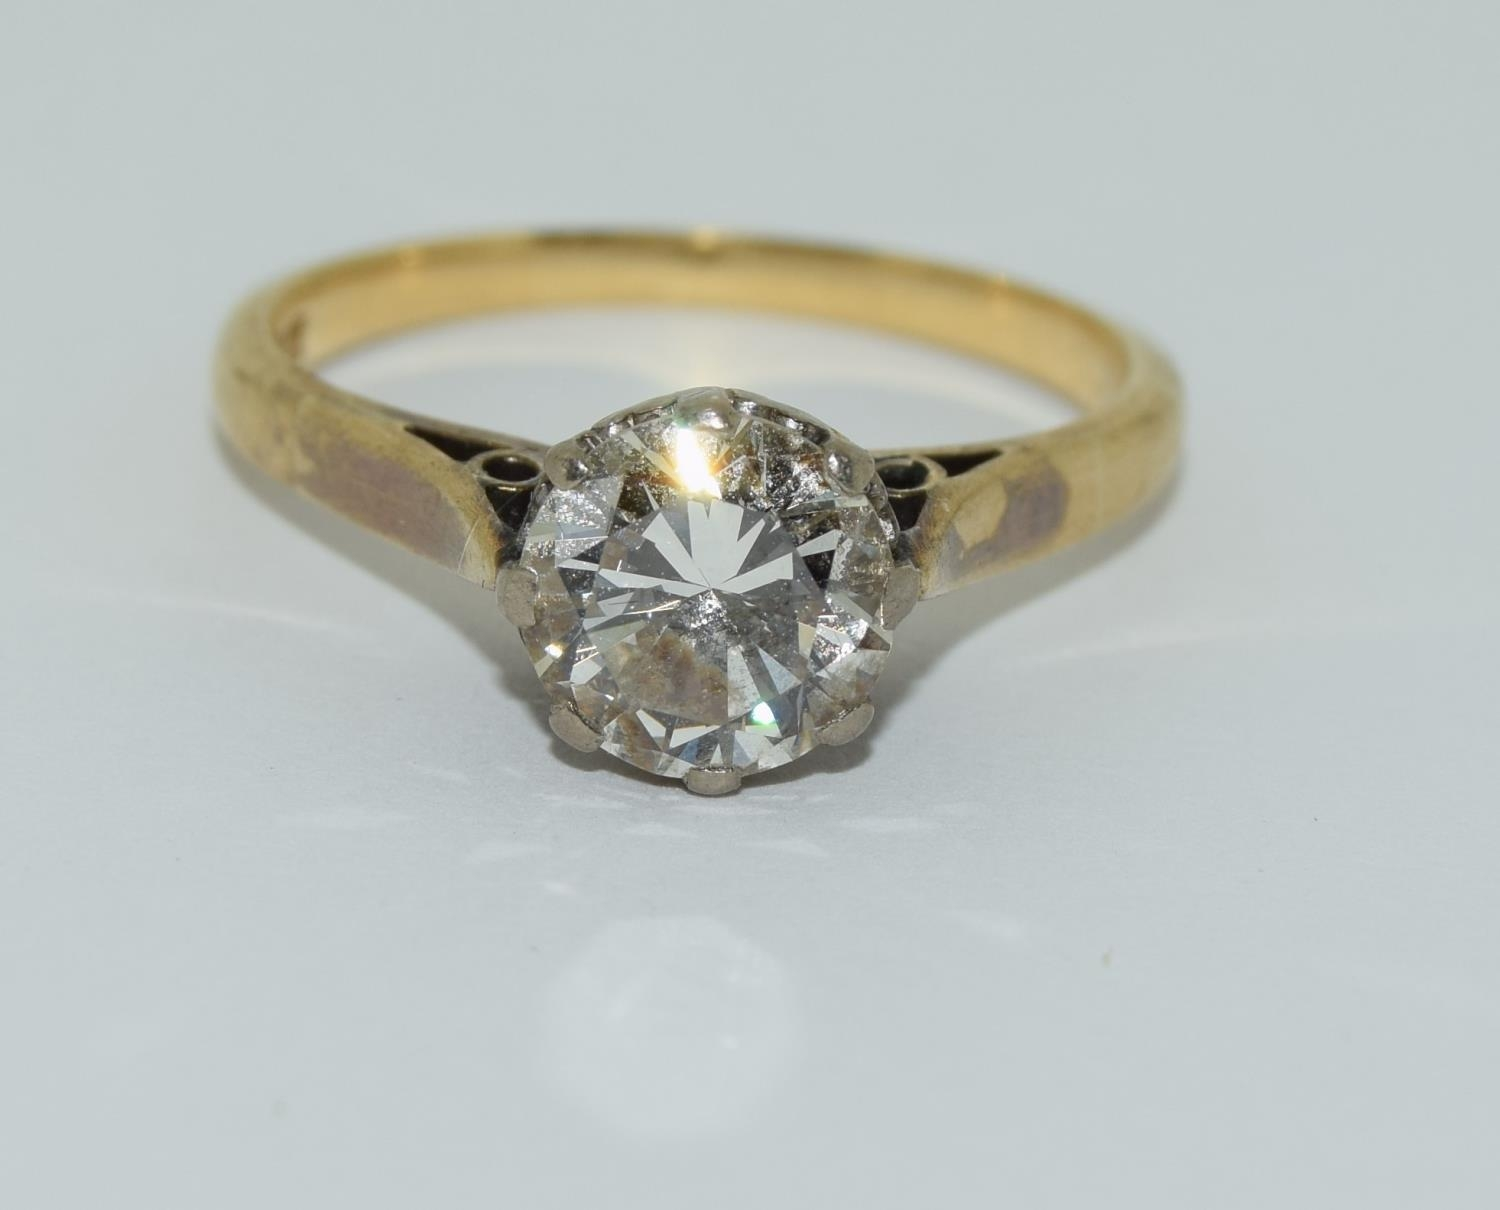 An 18ct gold ladies diamond solitaire ring approx 1.5ct, Size M.